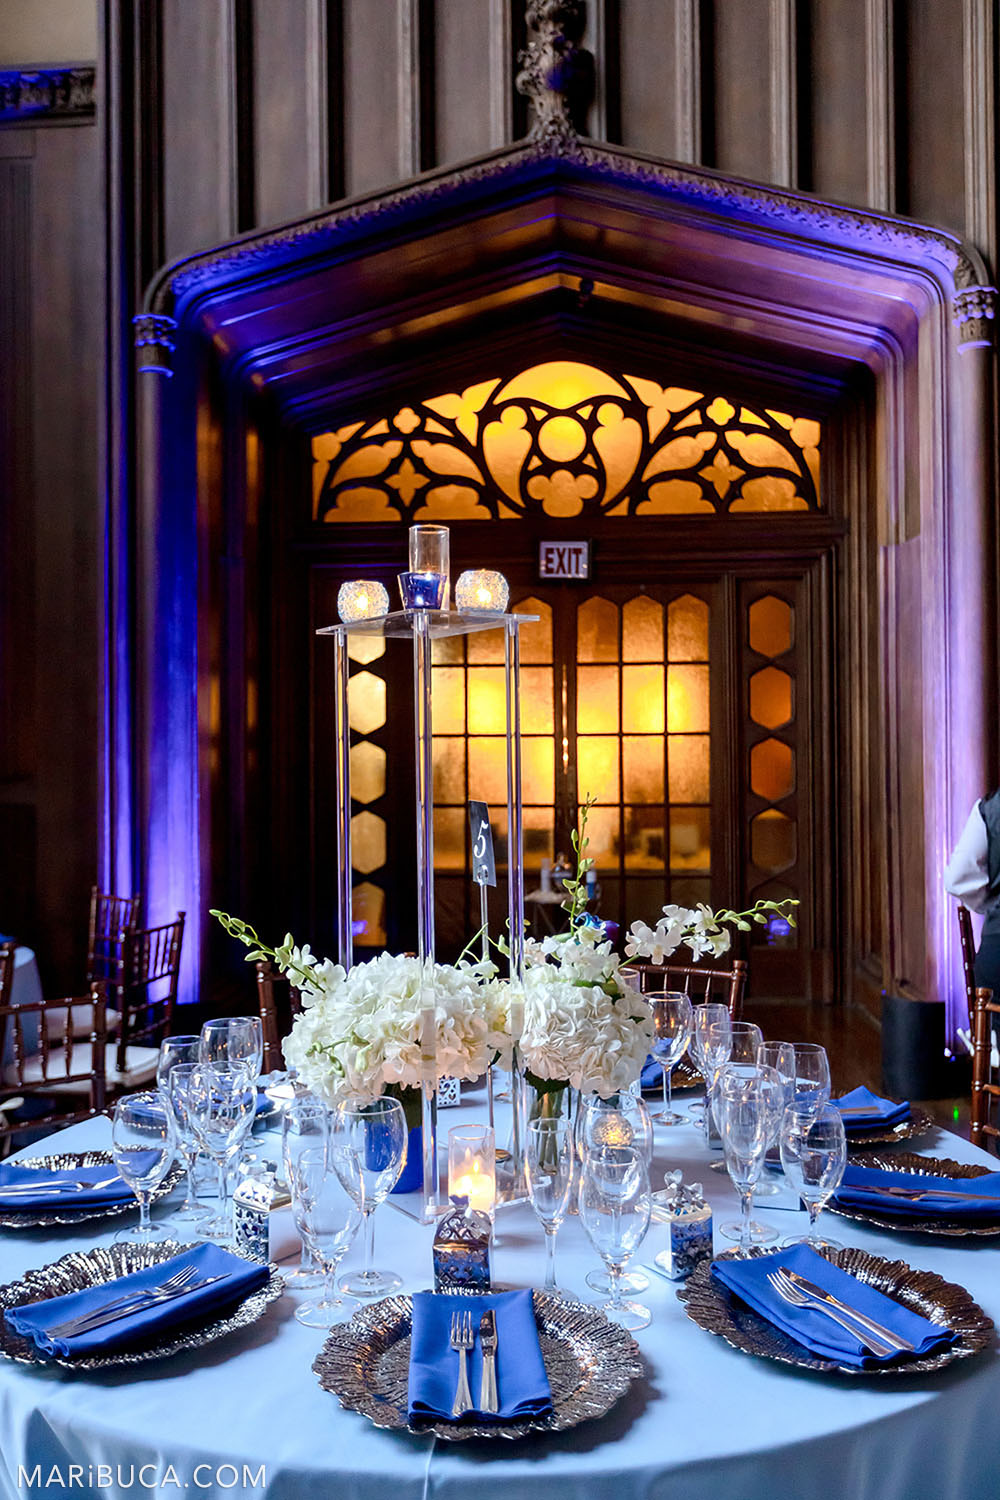 Fabulous venue with rounded light blue table, white bouquets of flowers on it with purple and orange lights in the Great Hall, Kohl Mansion, Burlingame